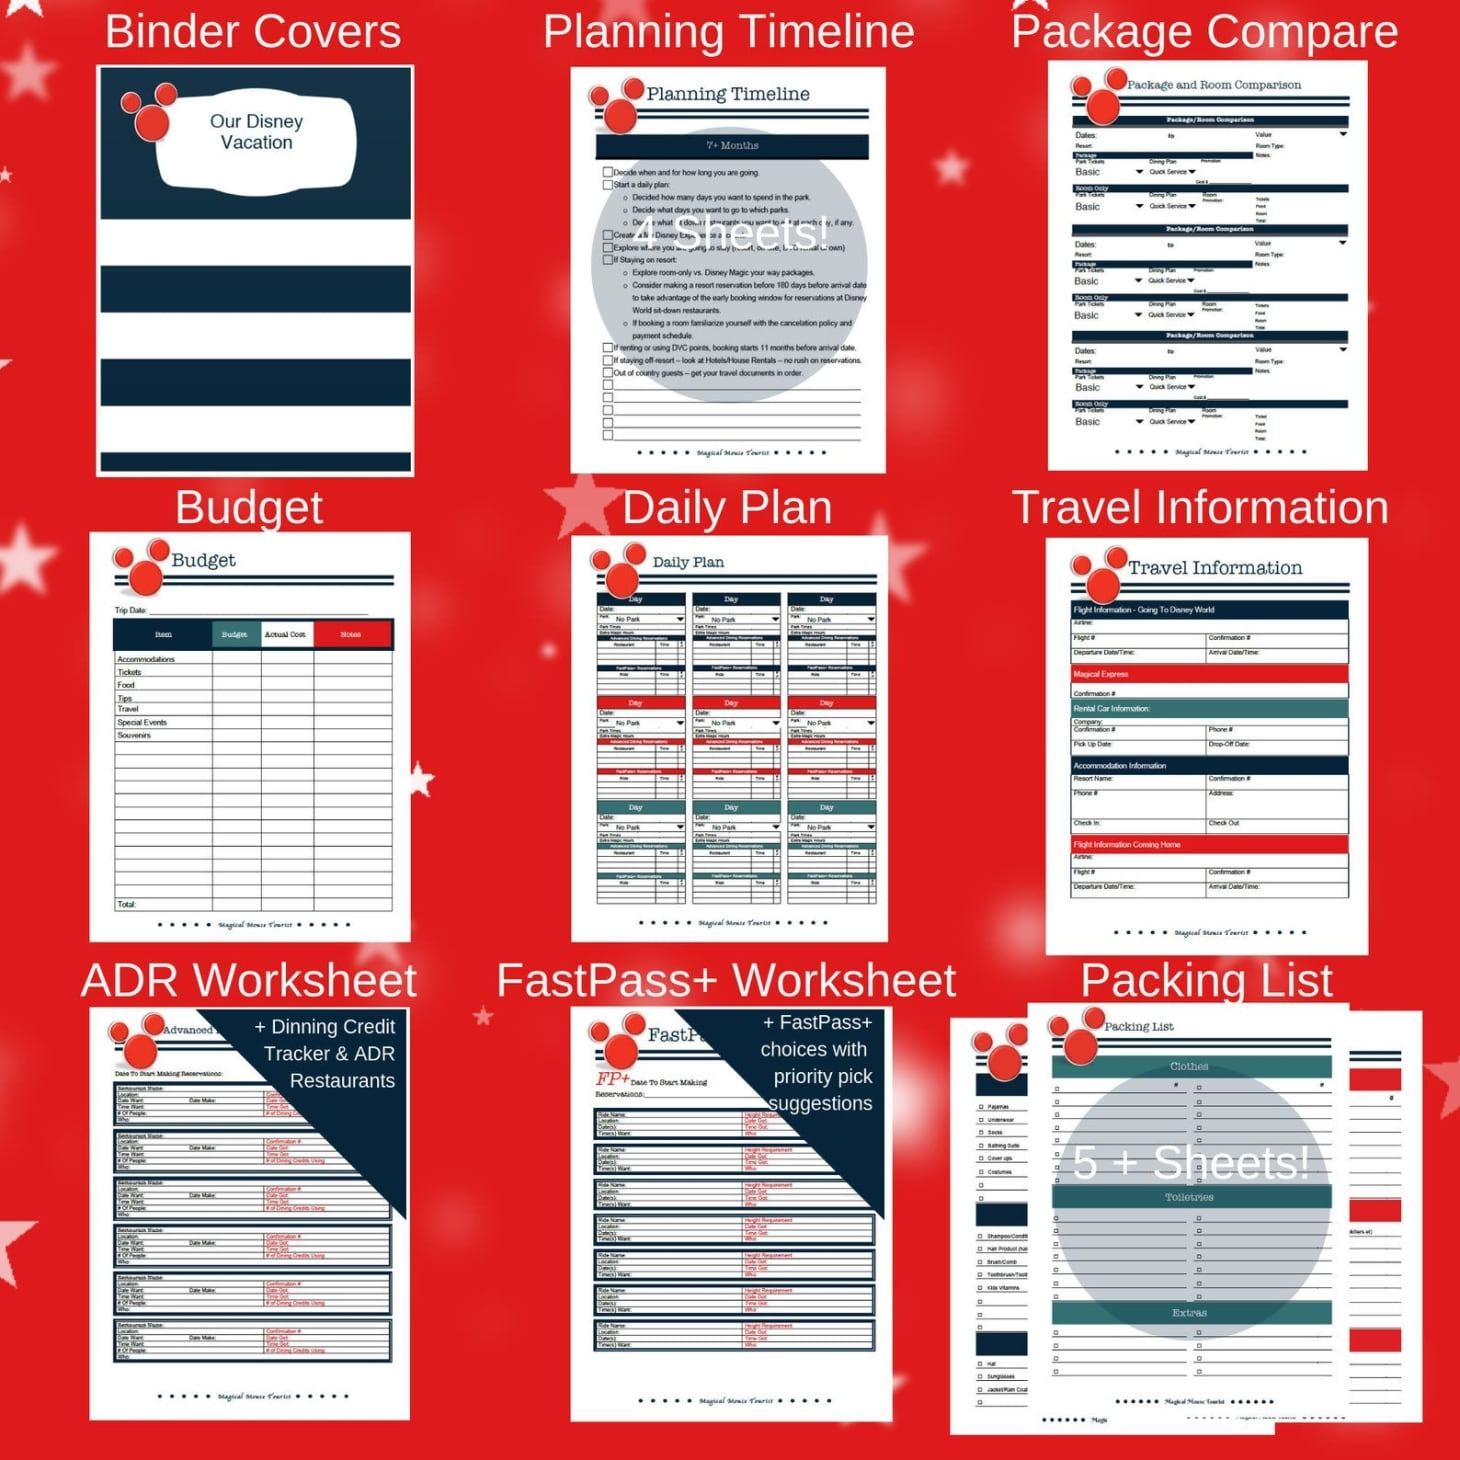 Disney Vacation Spreadsheet Planner Etsy Download inside Disney World Itinerary Template Download 2020